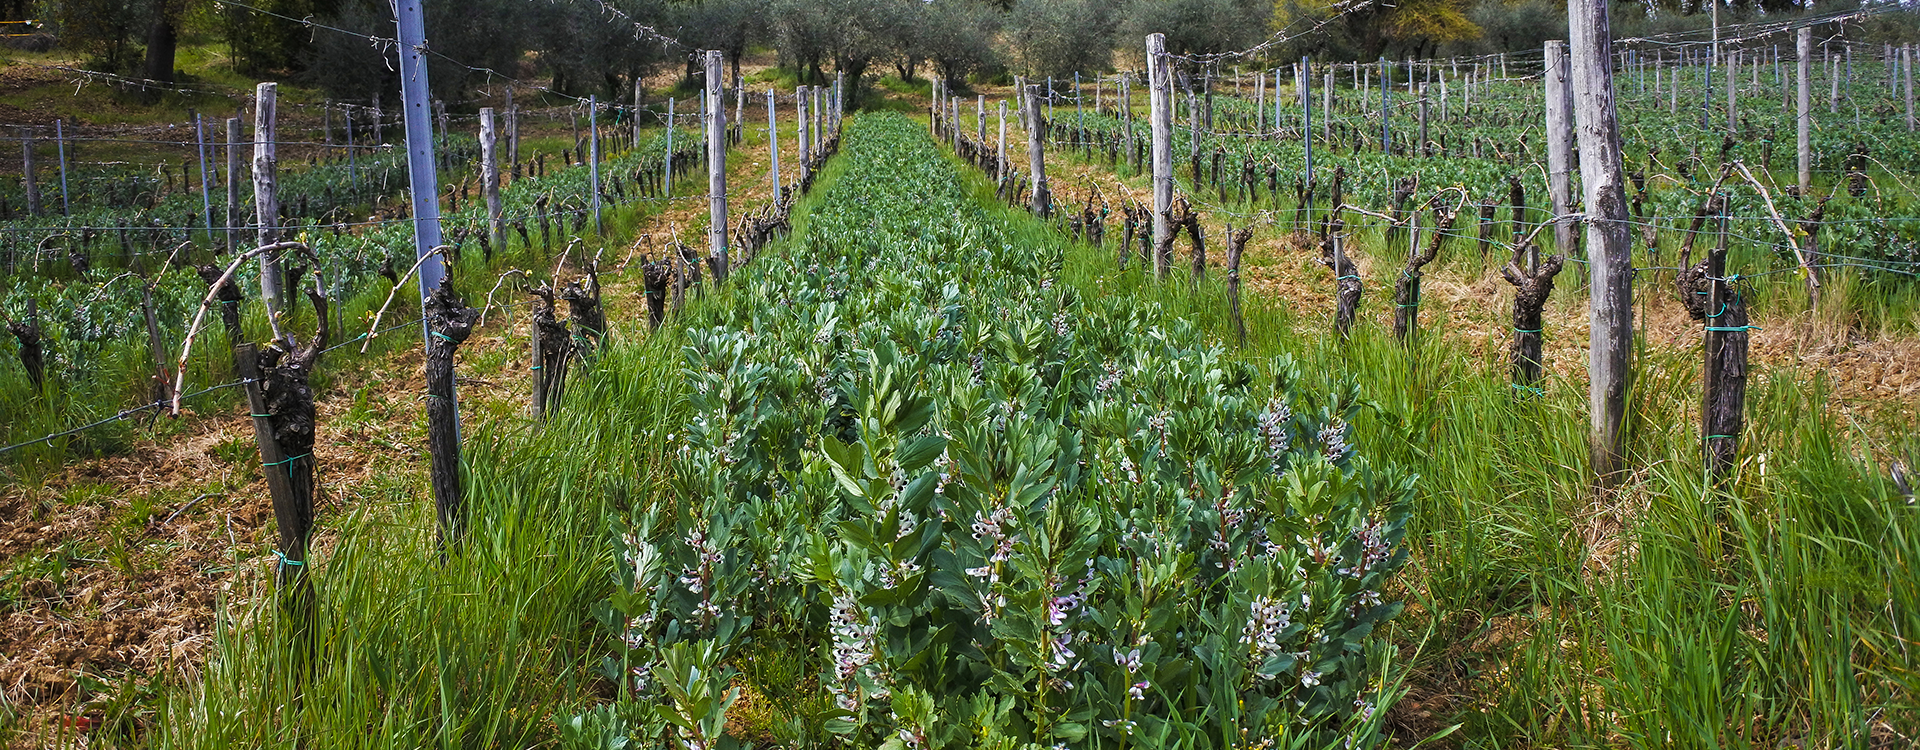 Vicia Faba bean plants at work in our organic vineyards